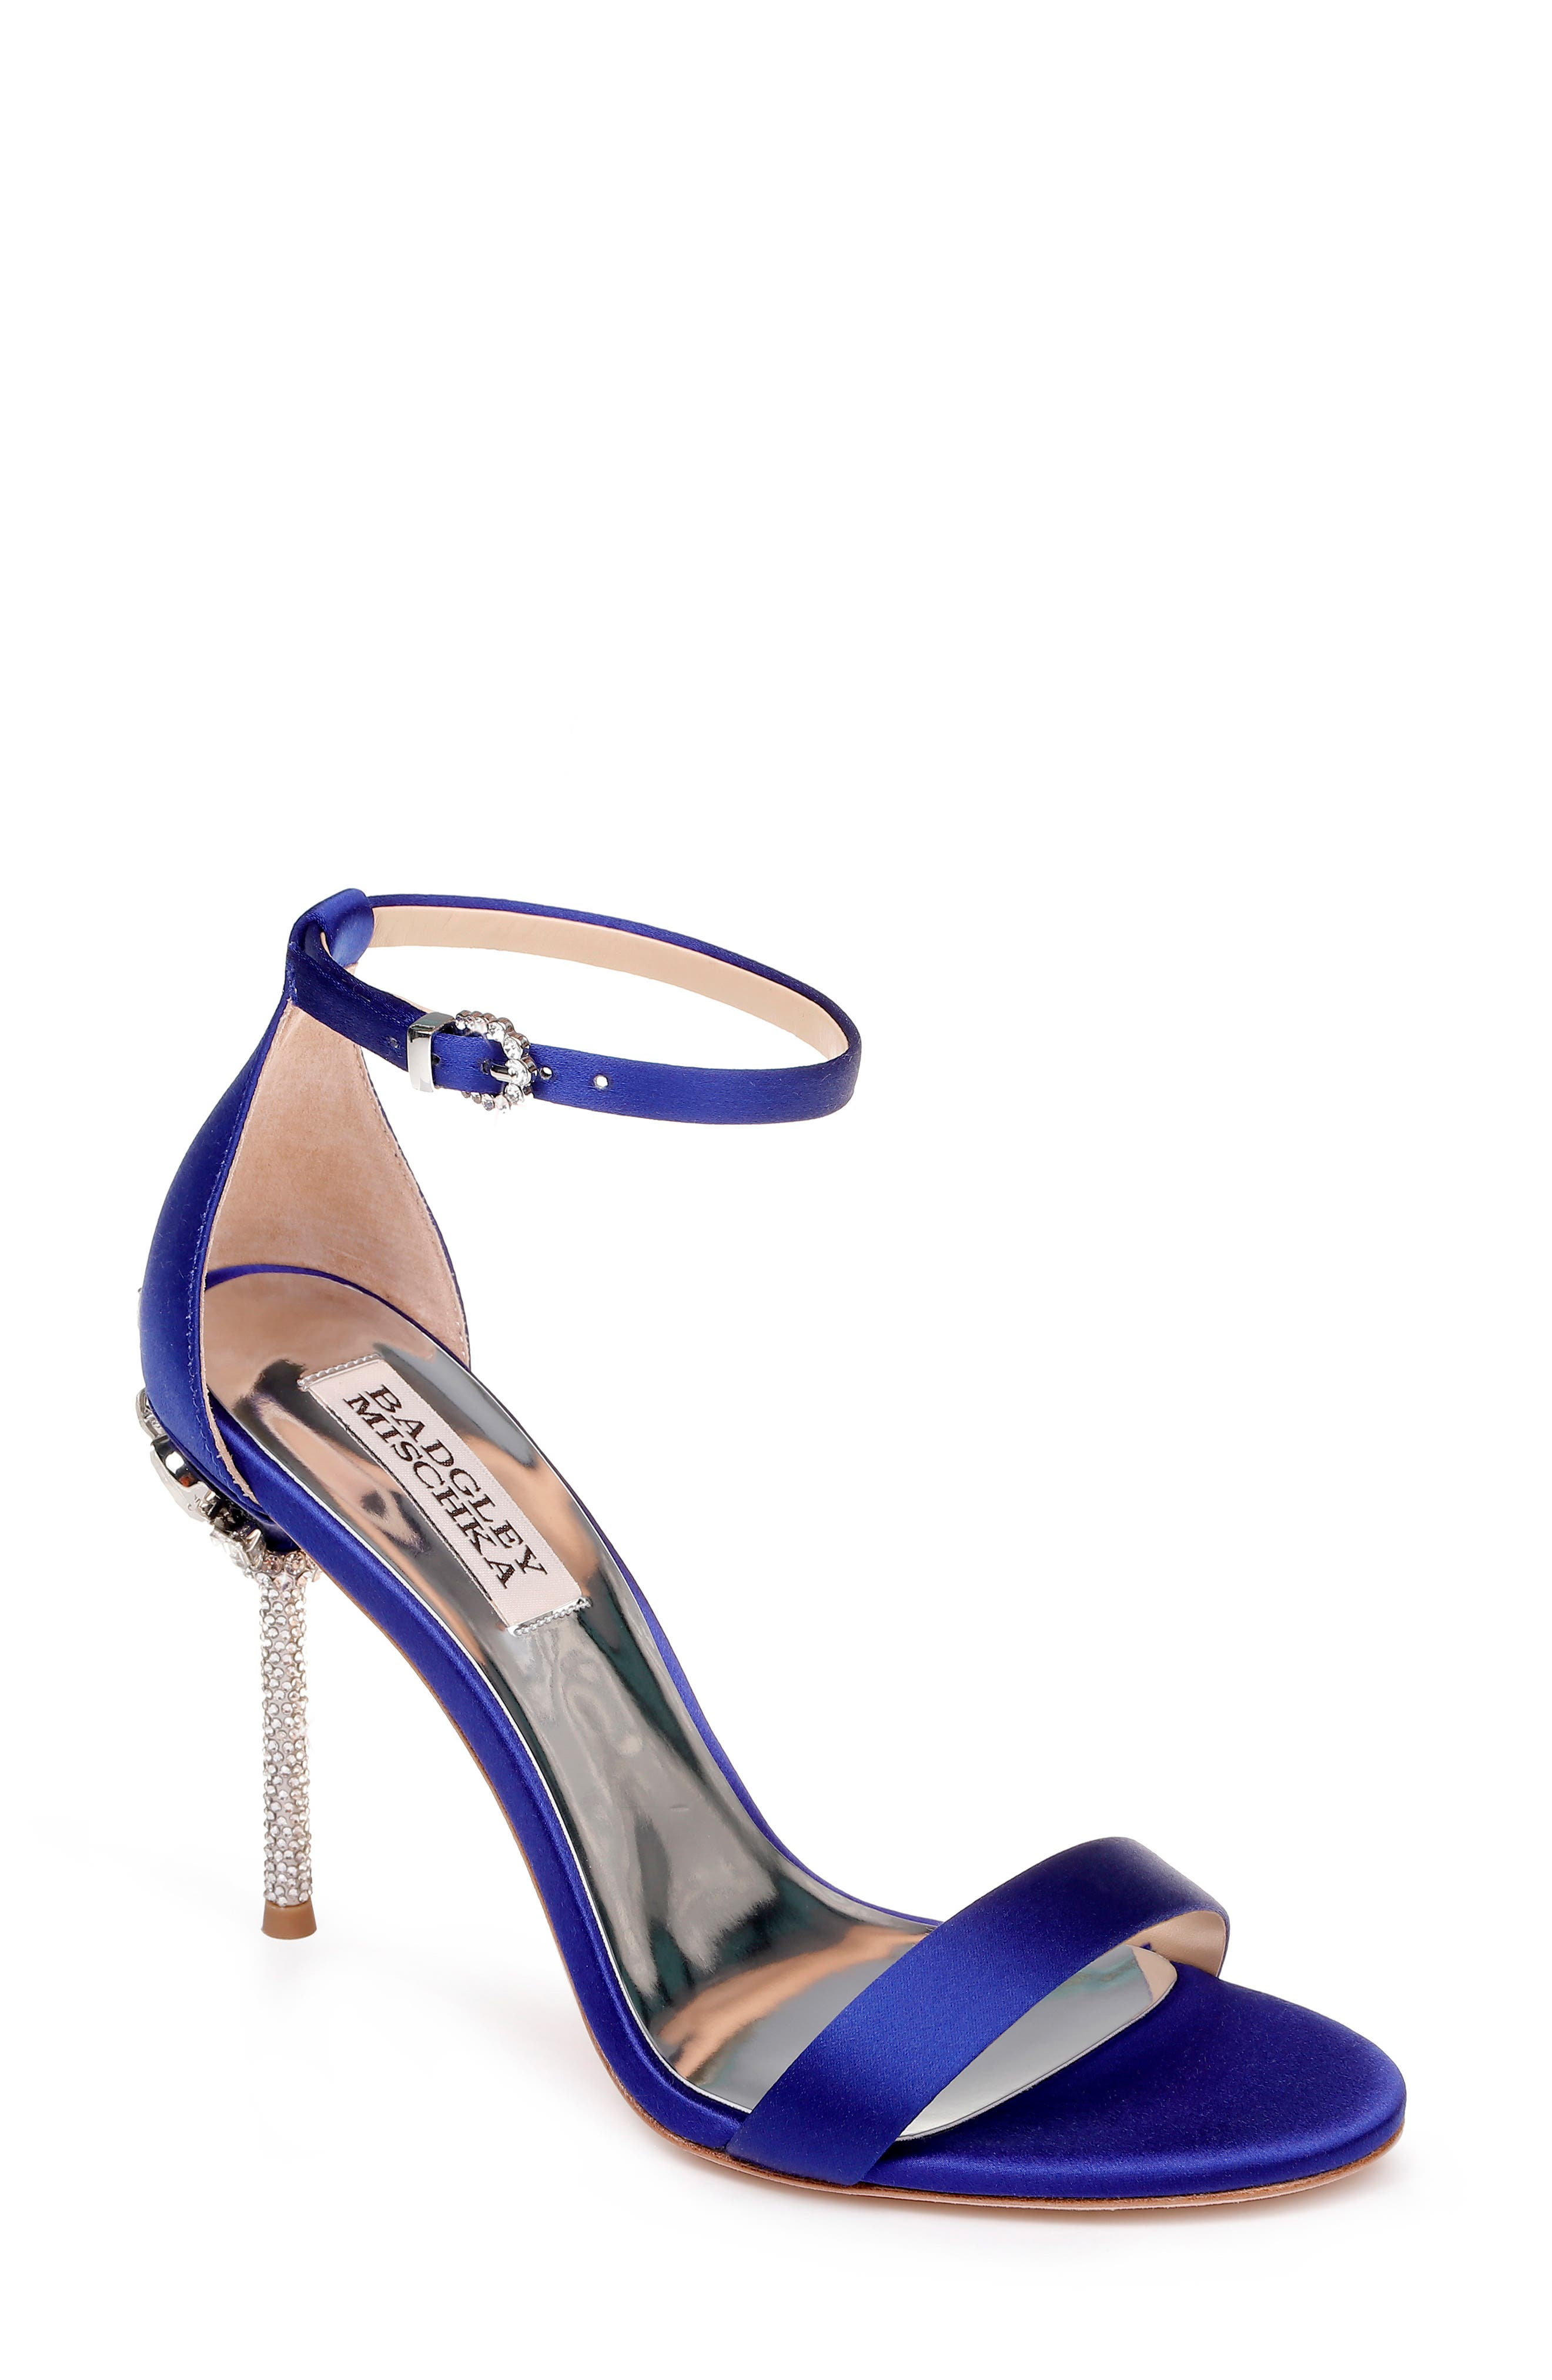 Badgley Mischka Vicia Crystal Embellished Heel Sandal, Blue